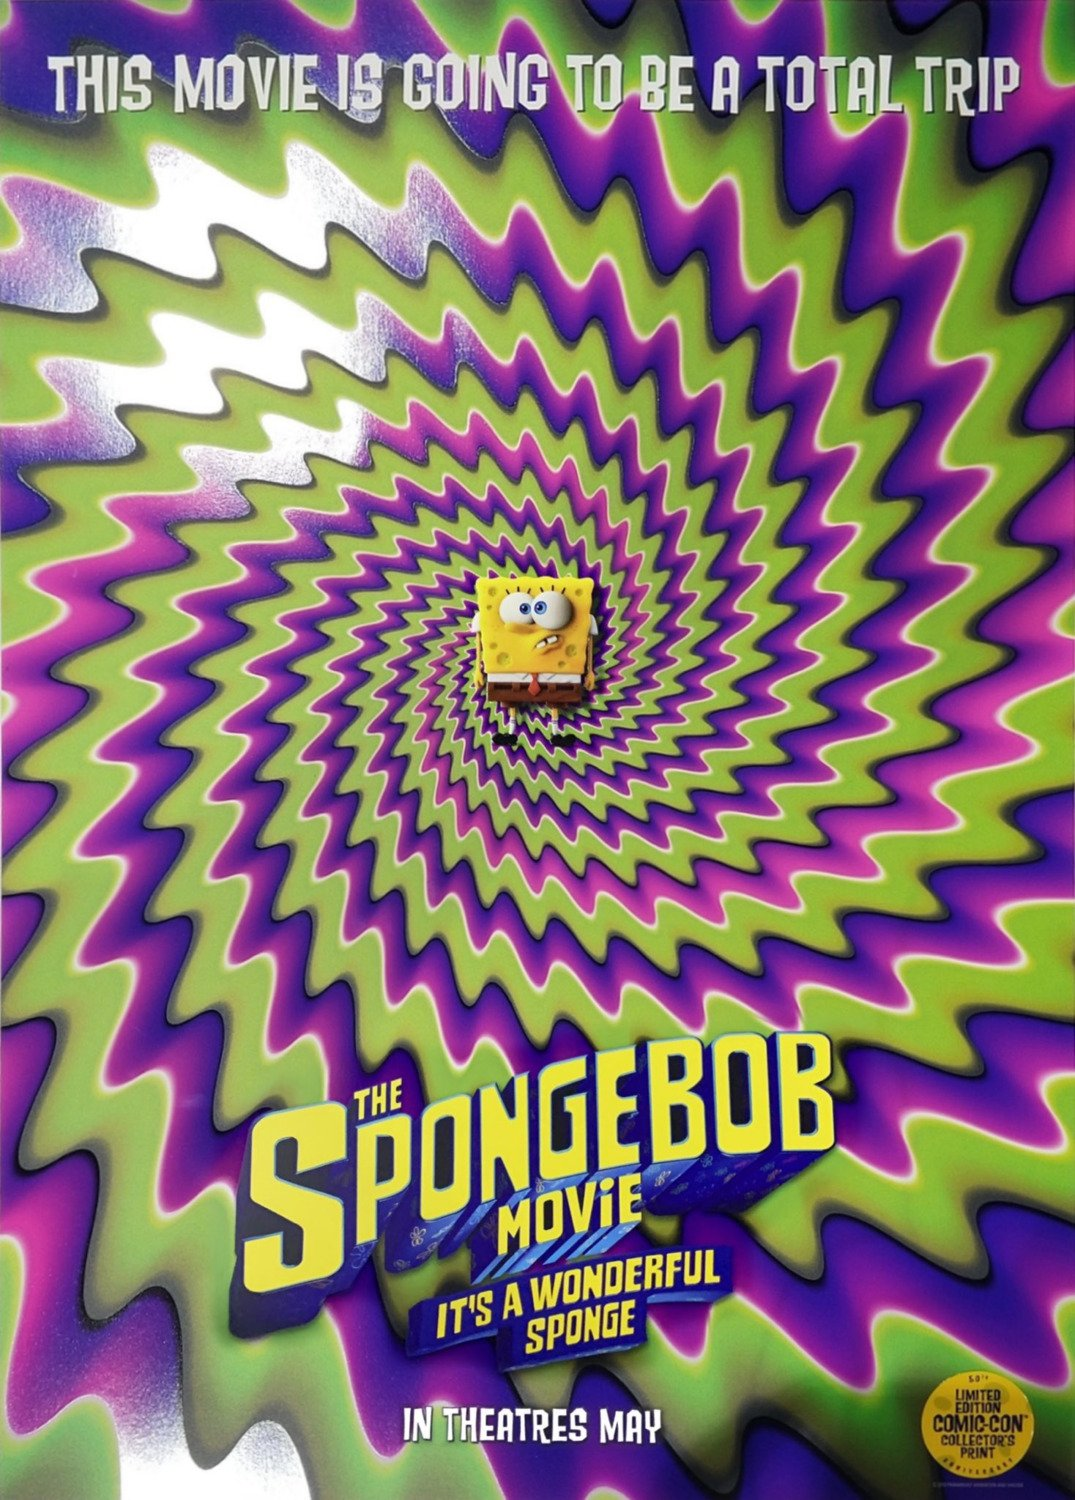 The SpongeBob Movie: It's a Wonderful Sponge